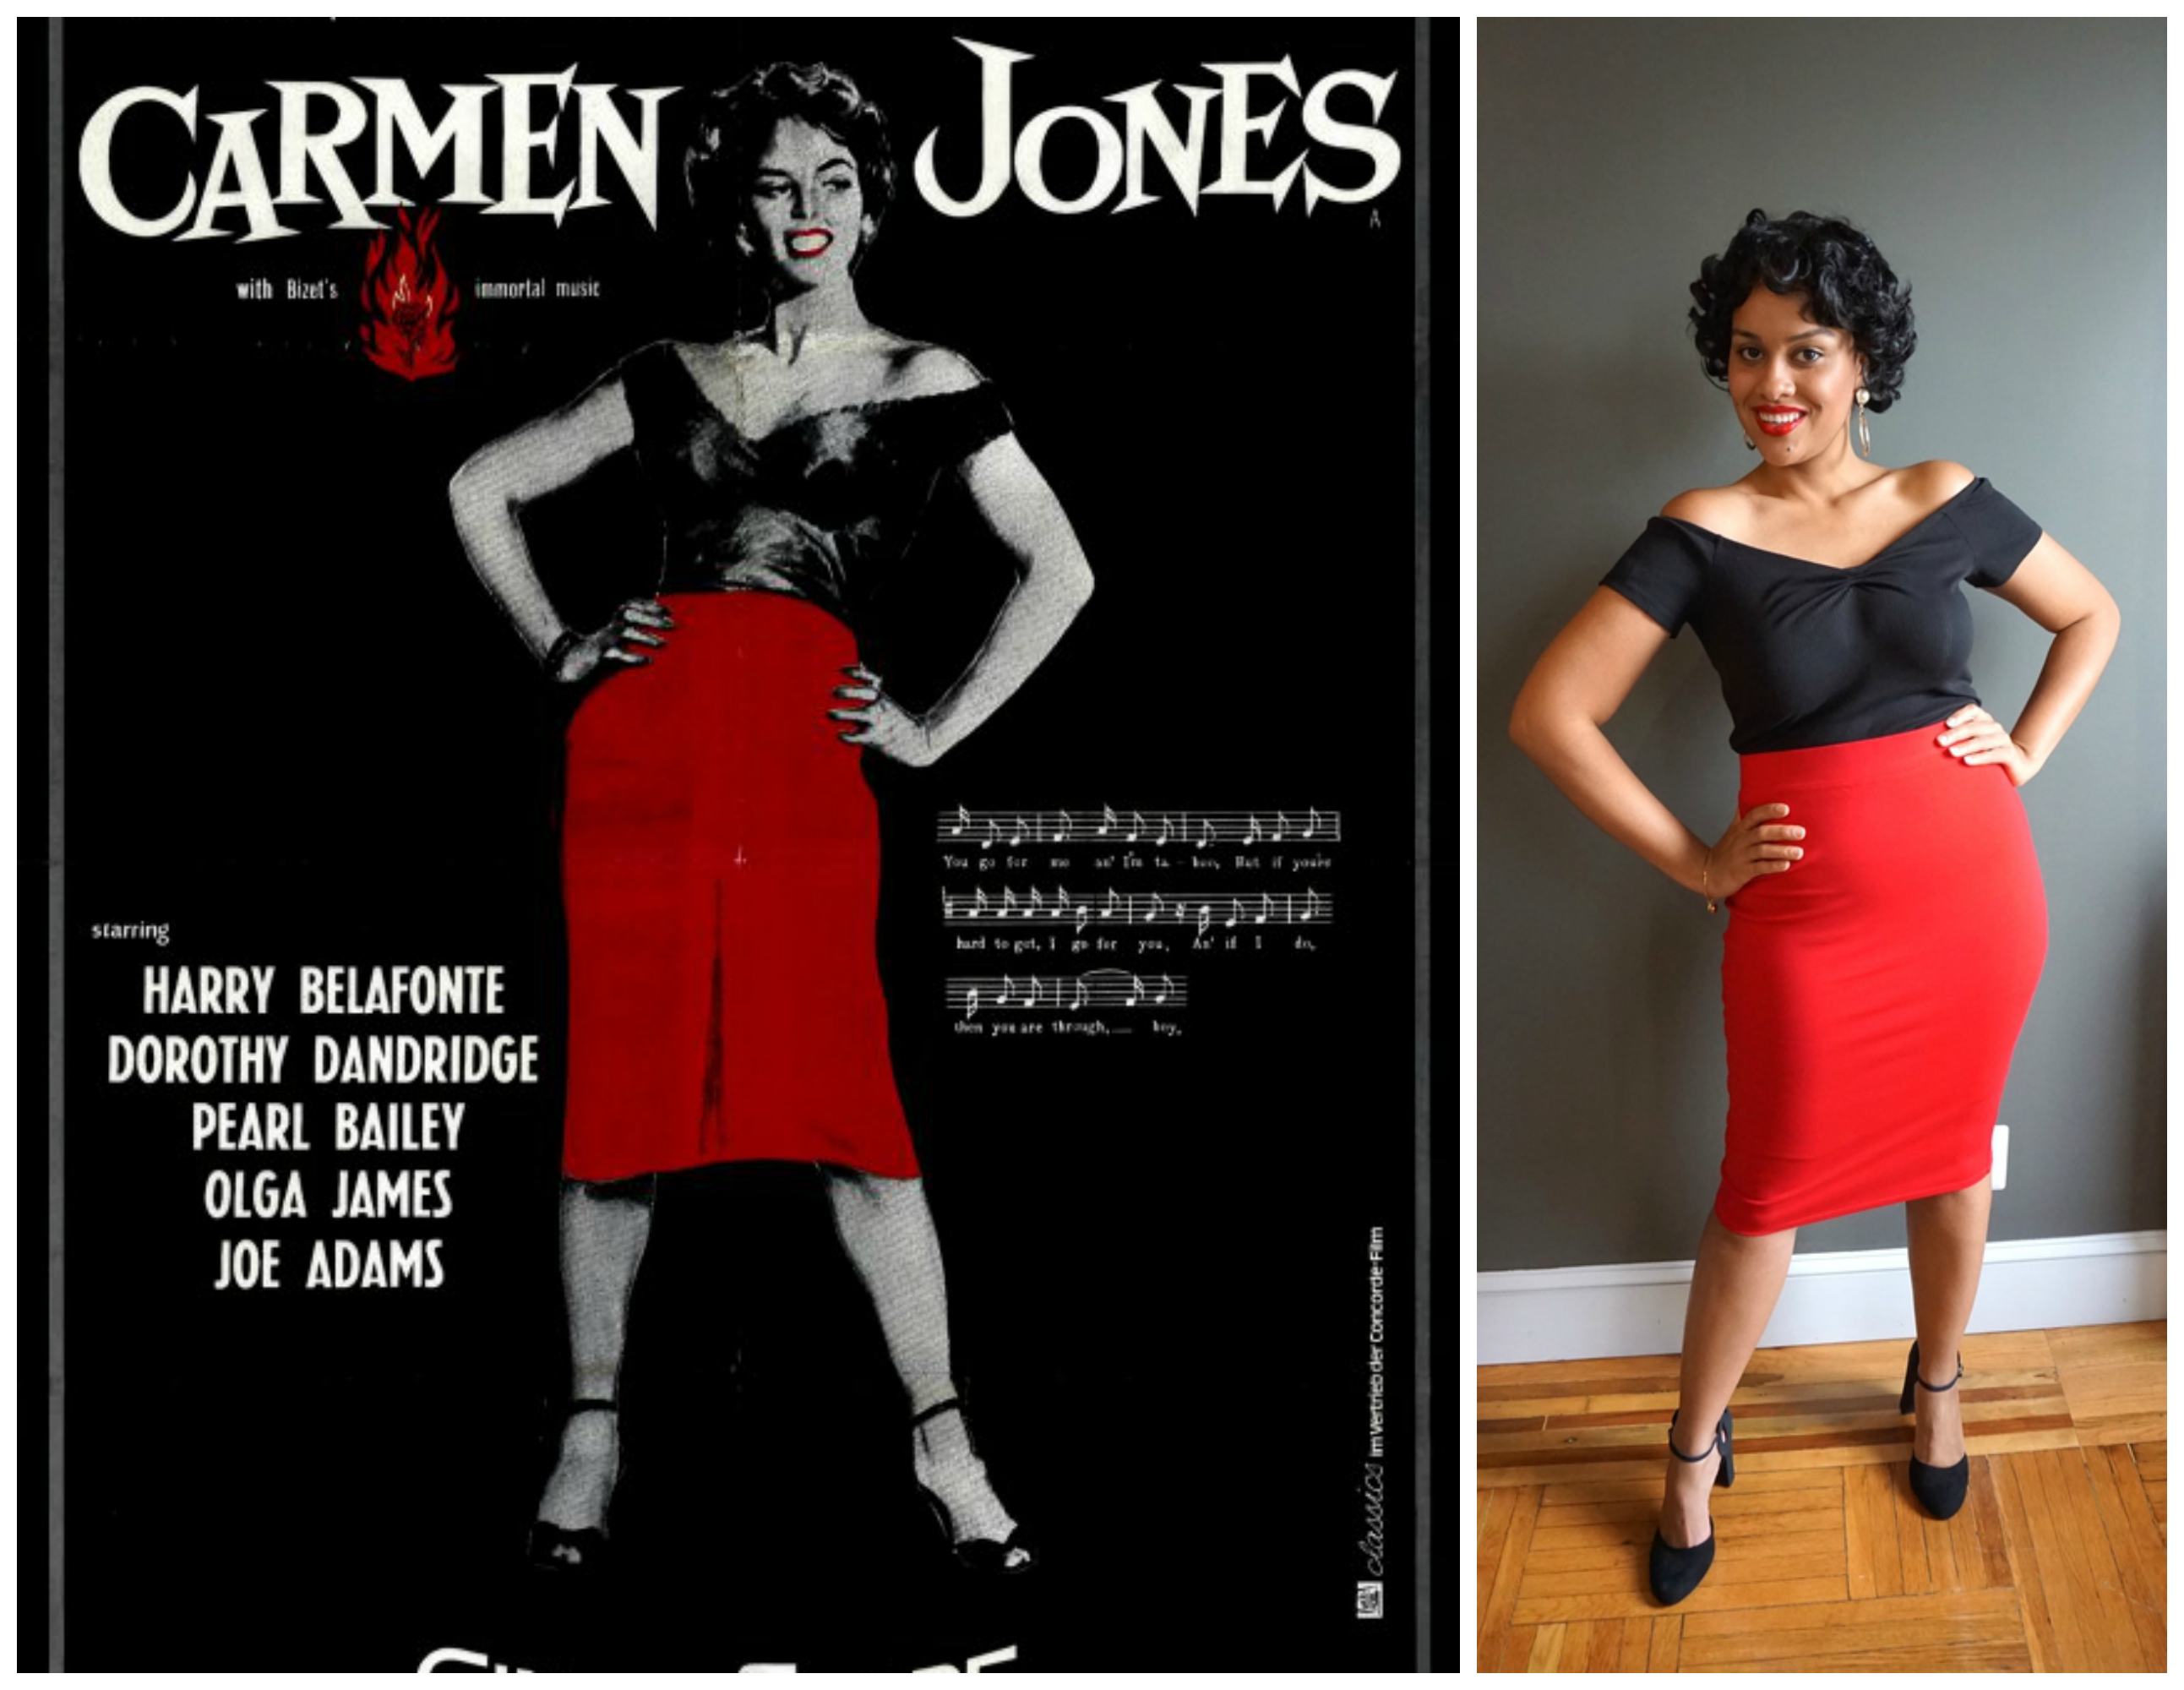 Carmen Jones costume comparison